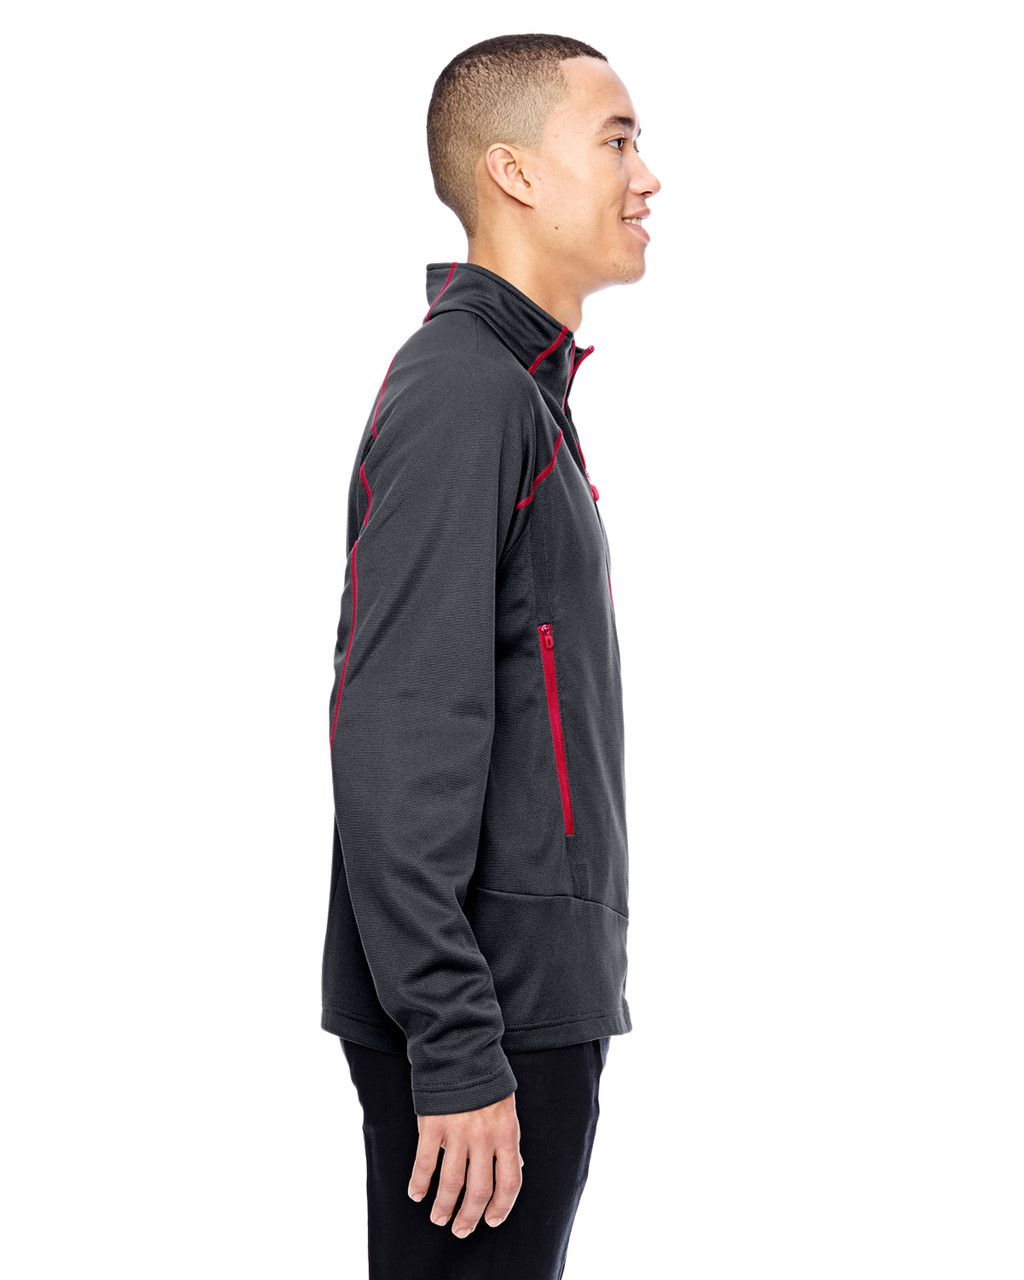 Carbon/Olympic Red-side 88806 North End Sport Red Interactive Cadence Two-Tone Brush Back Jacket